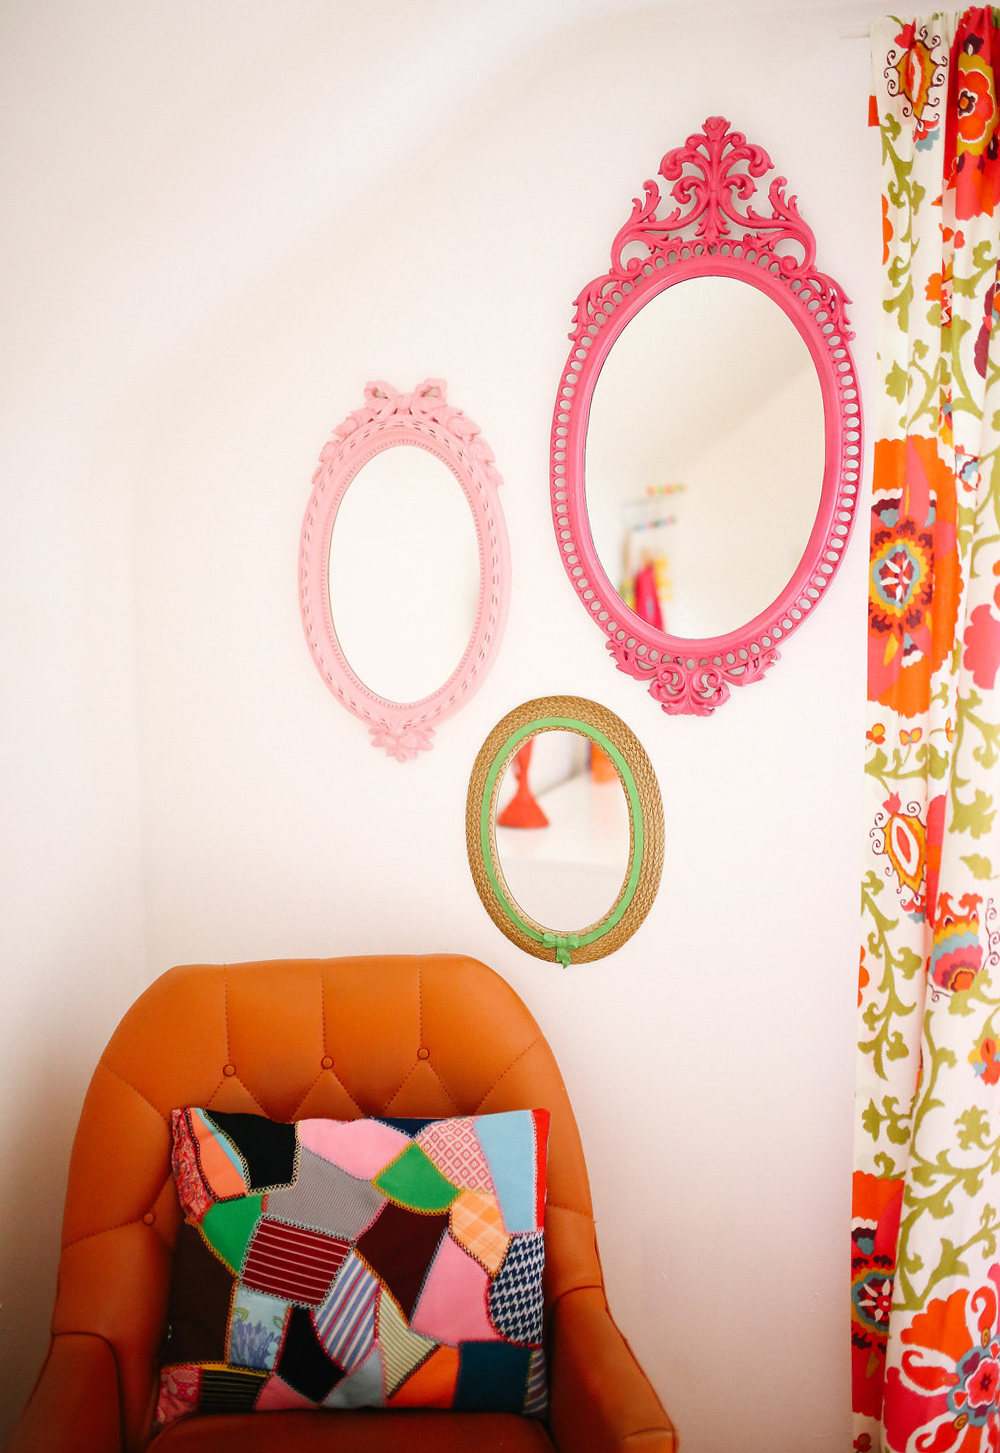 In Kentucky, Color and Pattern Make Up a Quirky Family Home | Design*Sponge